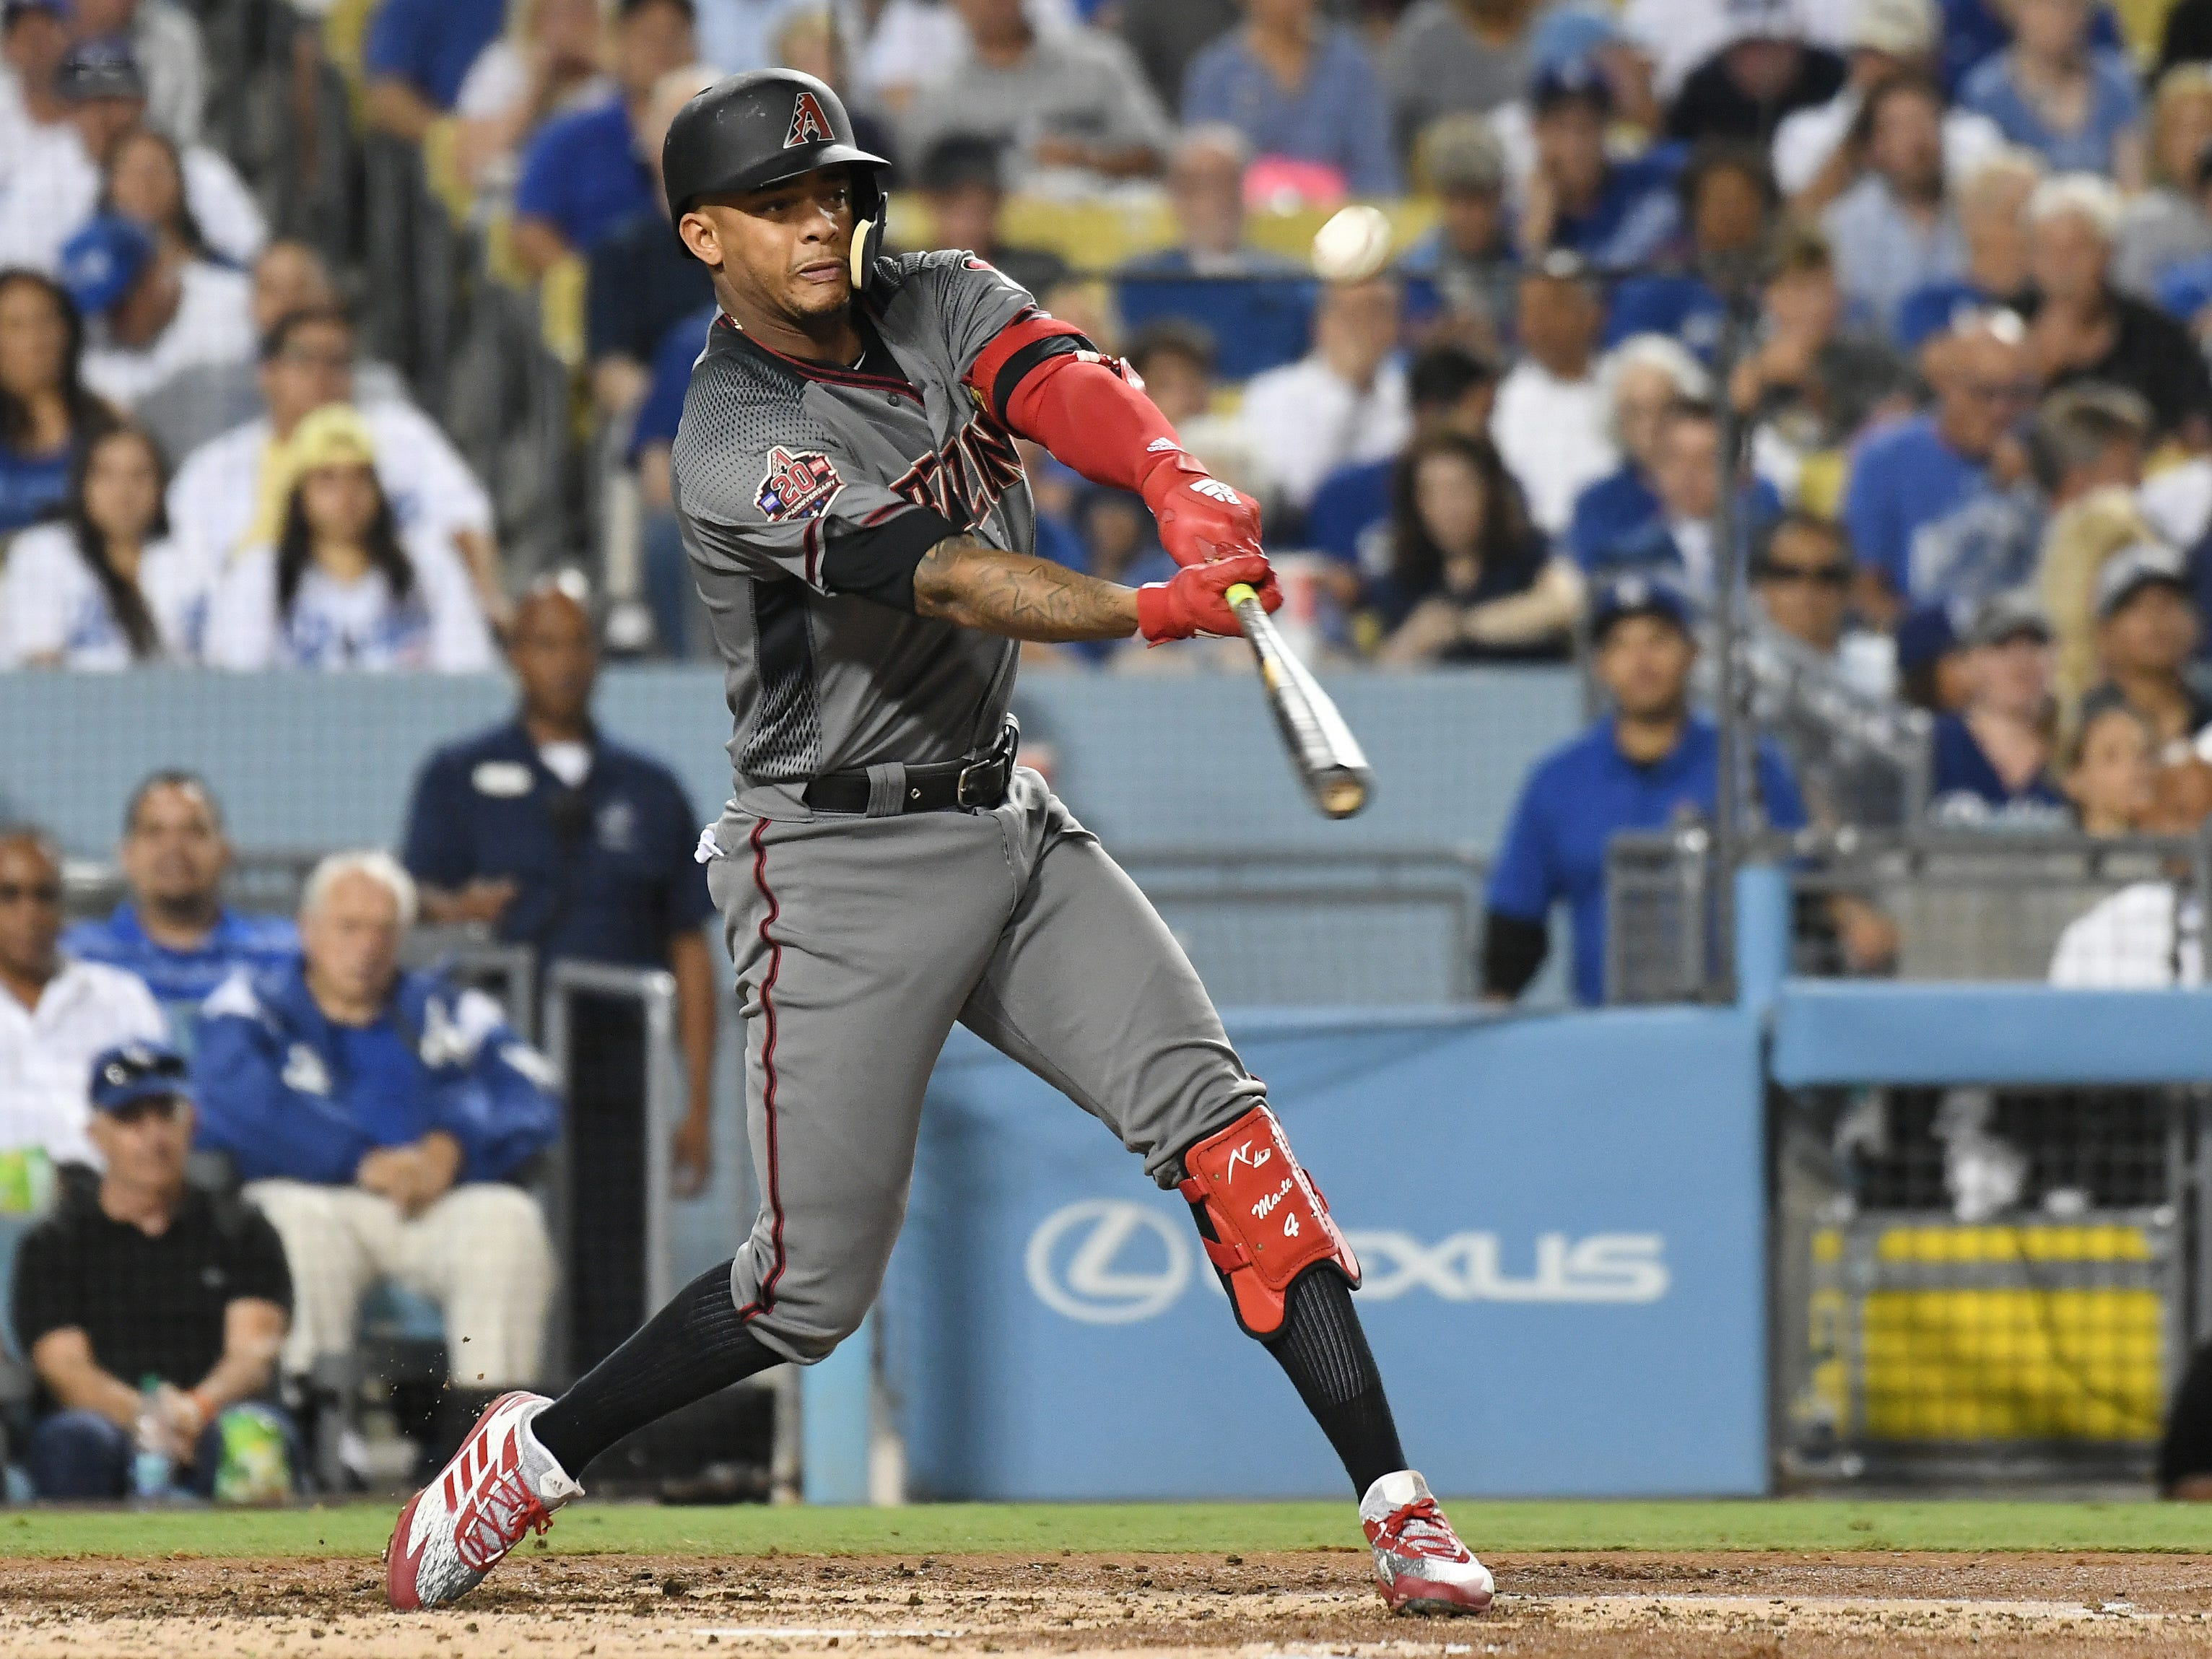 Aug 30, 2018; Los Angeles, CA, USA; Arizona Diamondbacks shortstop Ketel Marte (4) hits a single against the Los Angeles Dodgers in the second inning at Dodger Stadium. Mandatory Credit: Richard Mackson-USA TODAY Sports